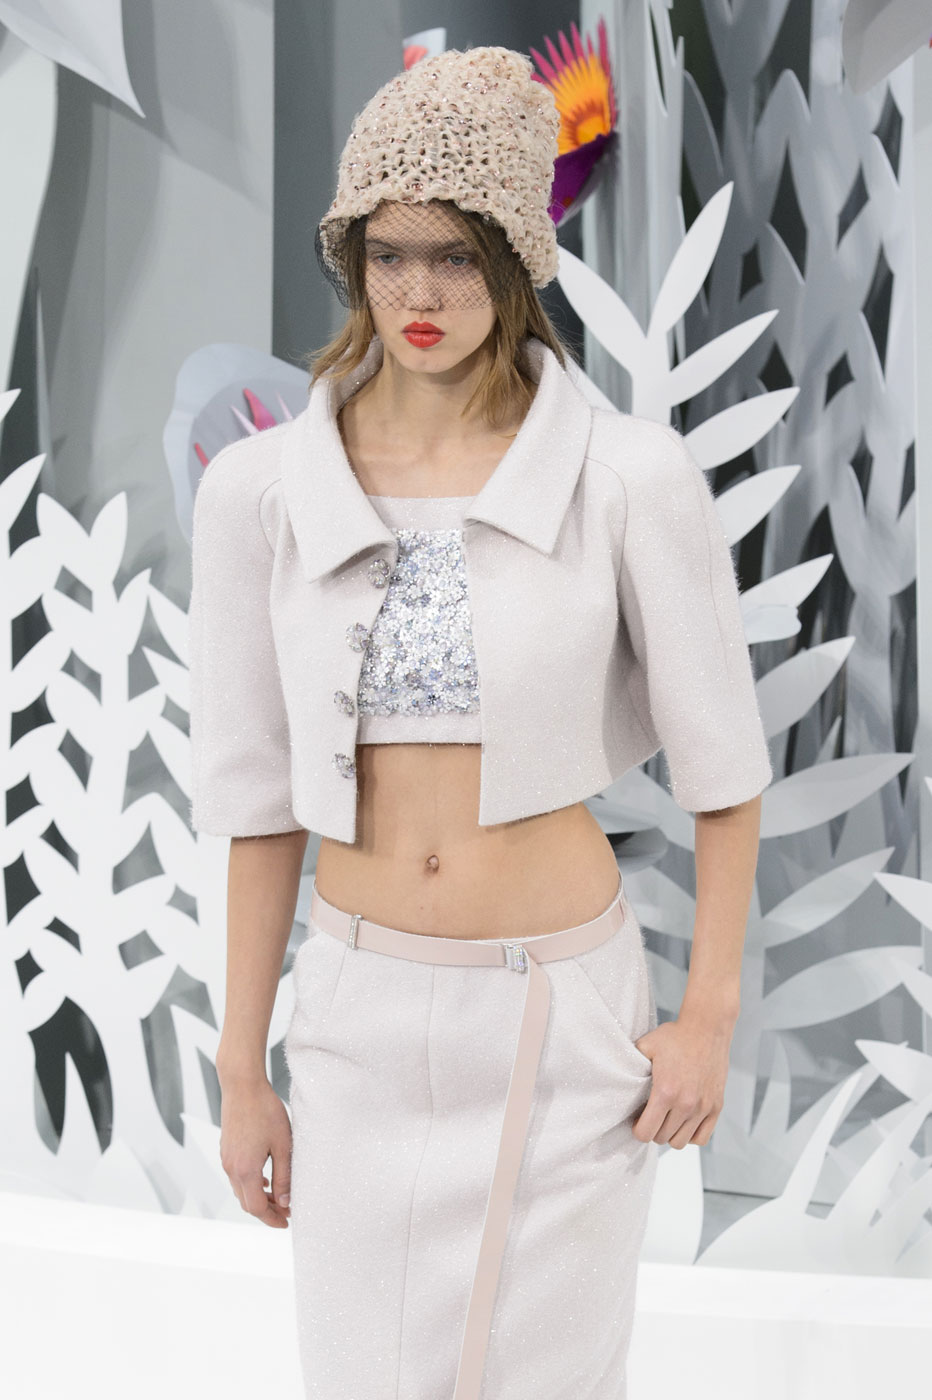 Chanel-fashion-runway-show-haute-couture-paris-spring-summer-2015-the-impression-055